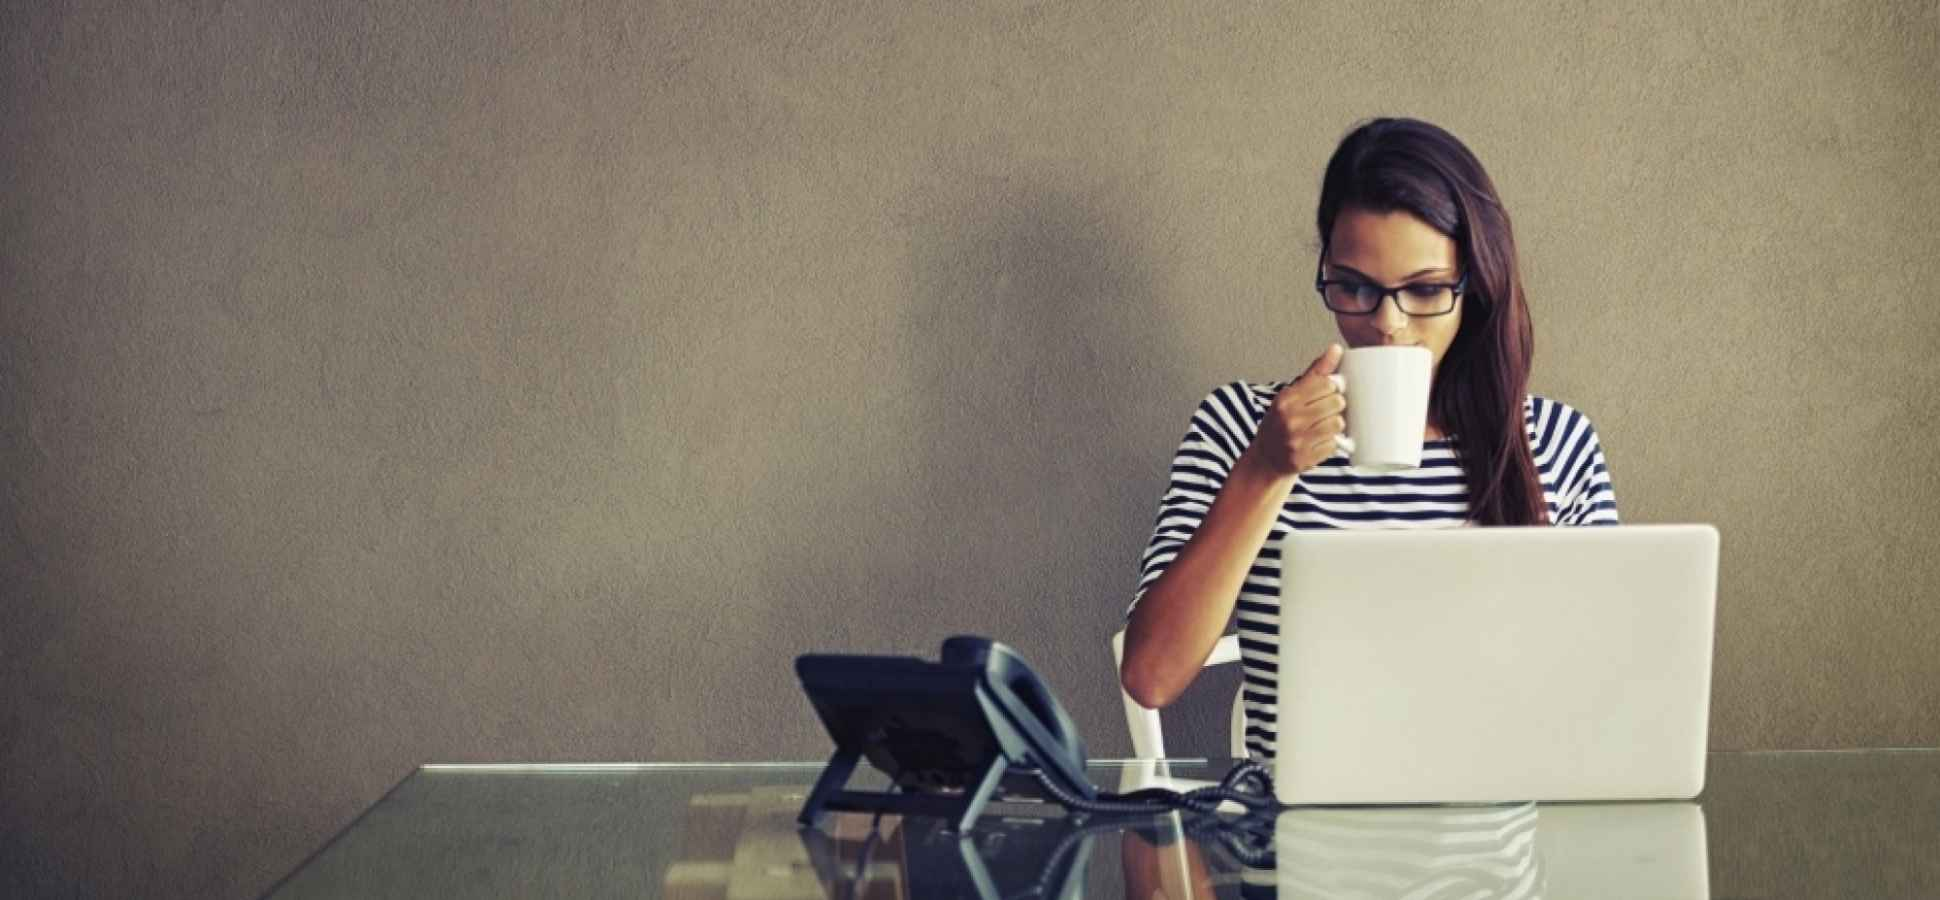 10 Things the Smartest Email Users Never Do